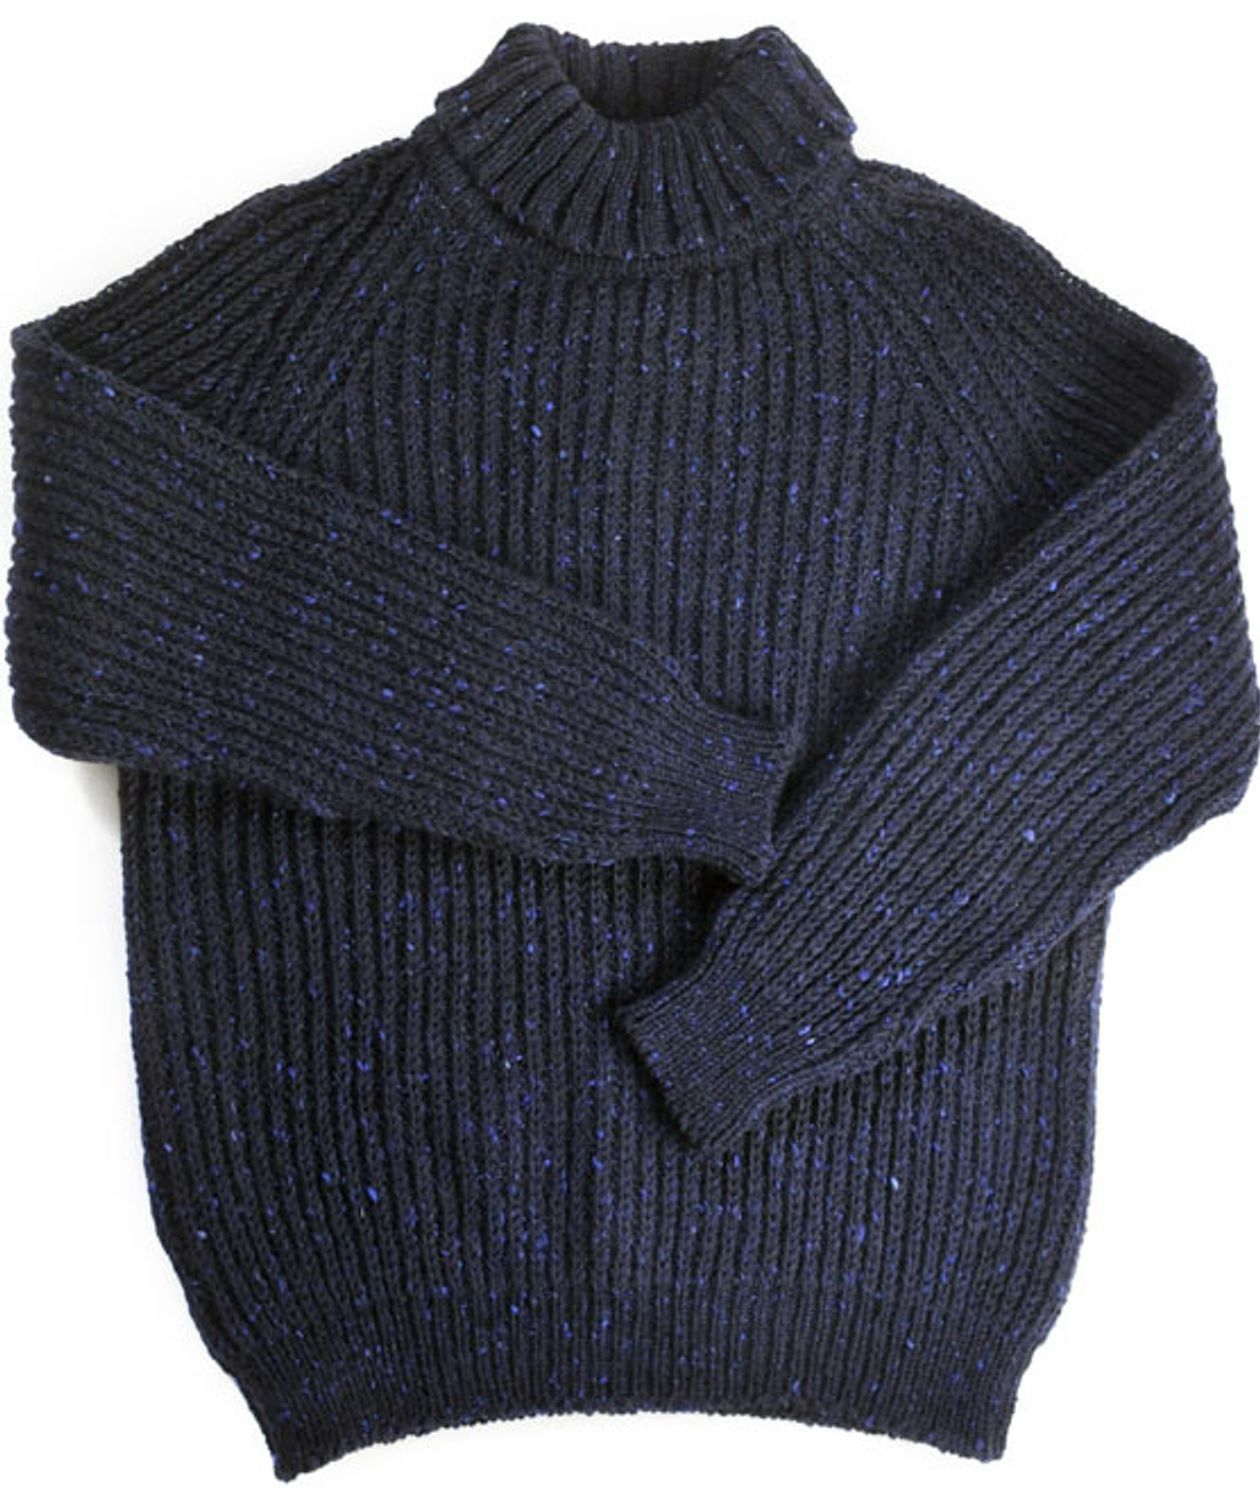 a813d5d53 Donegal Fisherman s Rib Polo Neck Sweater Navy